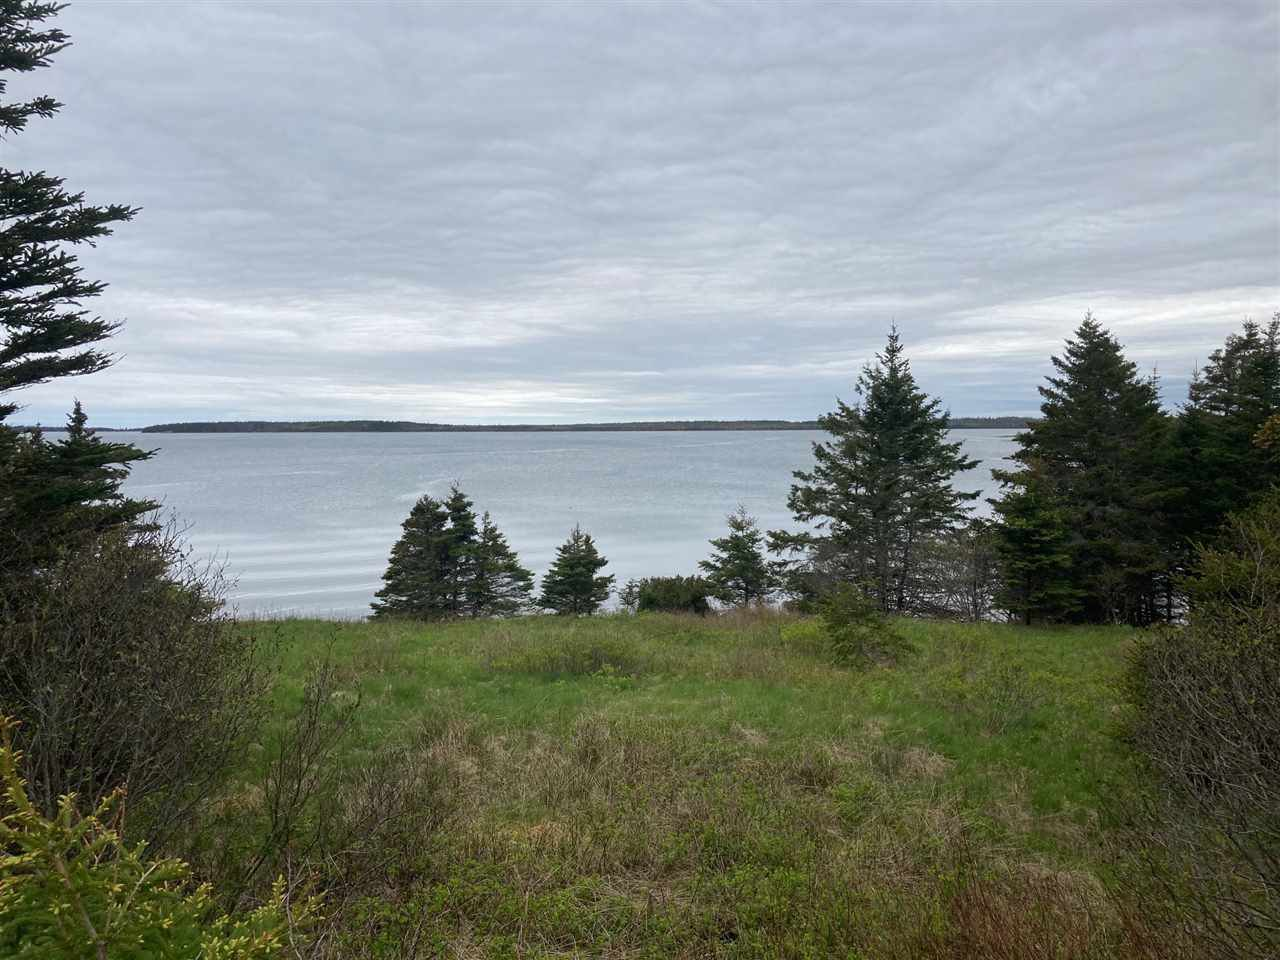 Main Photo: 1455 Highway 7 in Marie Joseph: 303-Guysborough County Vacant Land for sale (Highland Region)  : MLS®# 202010344